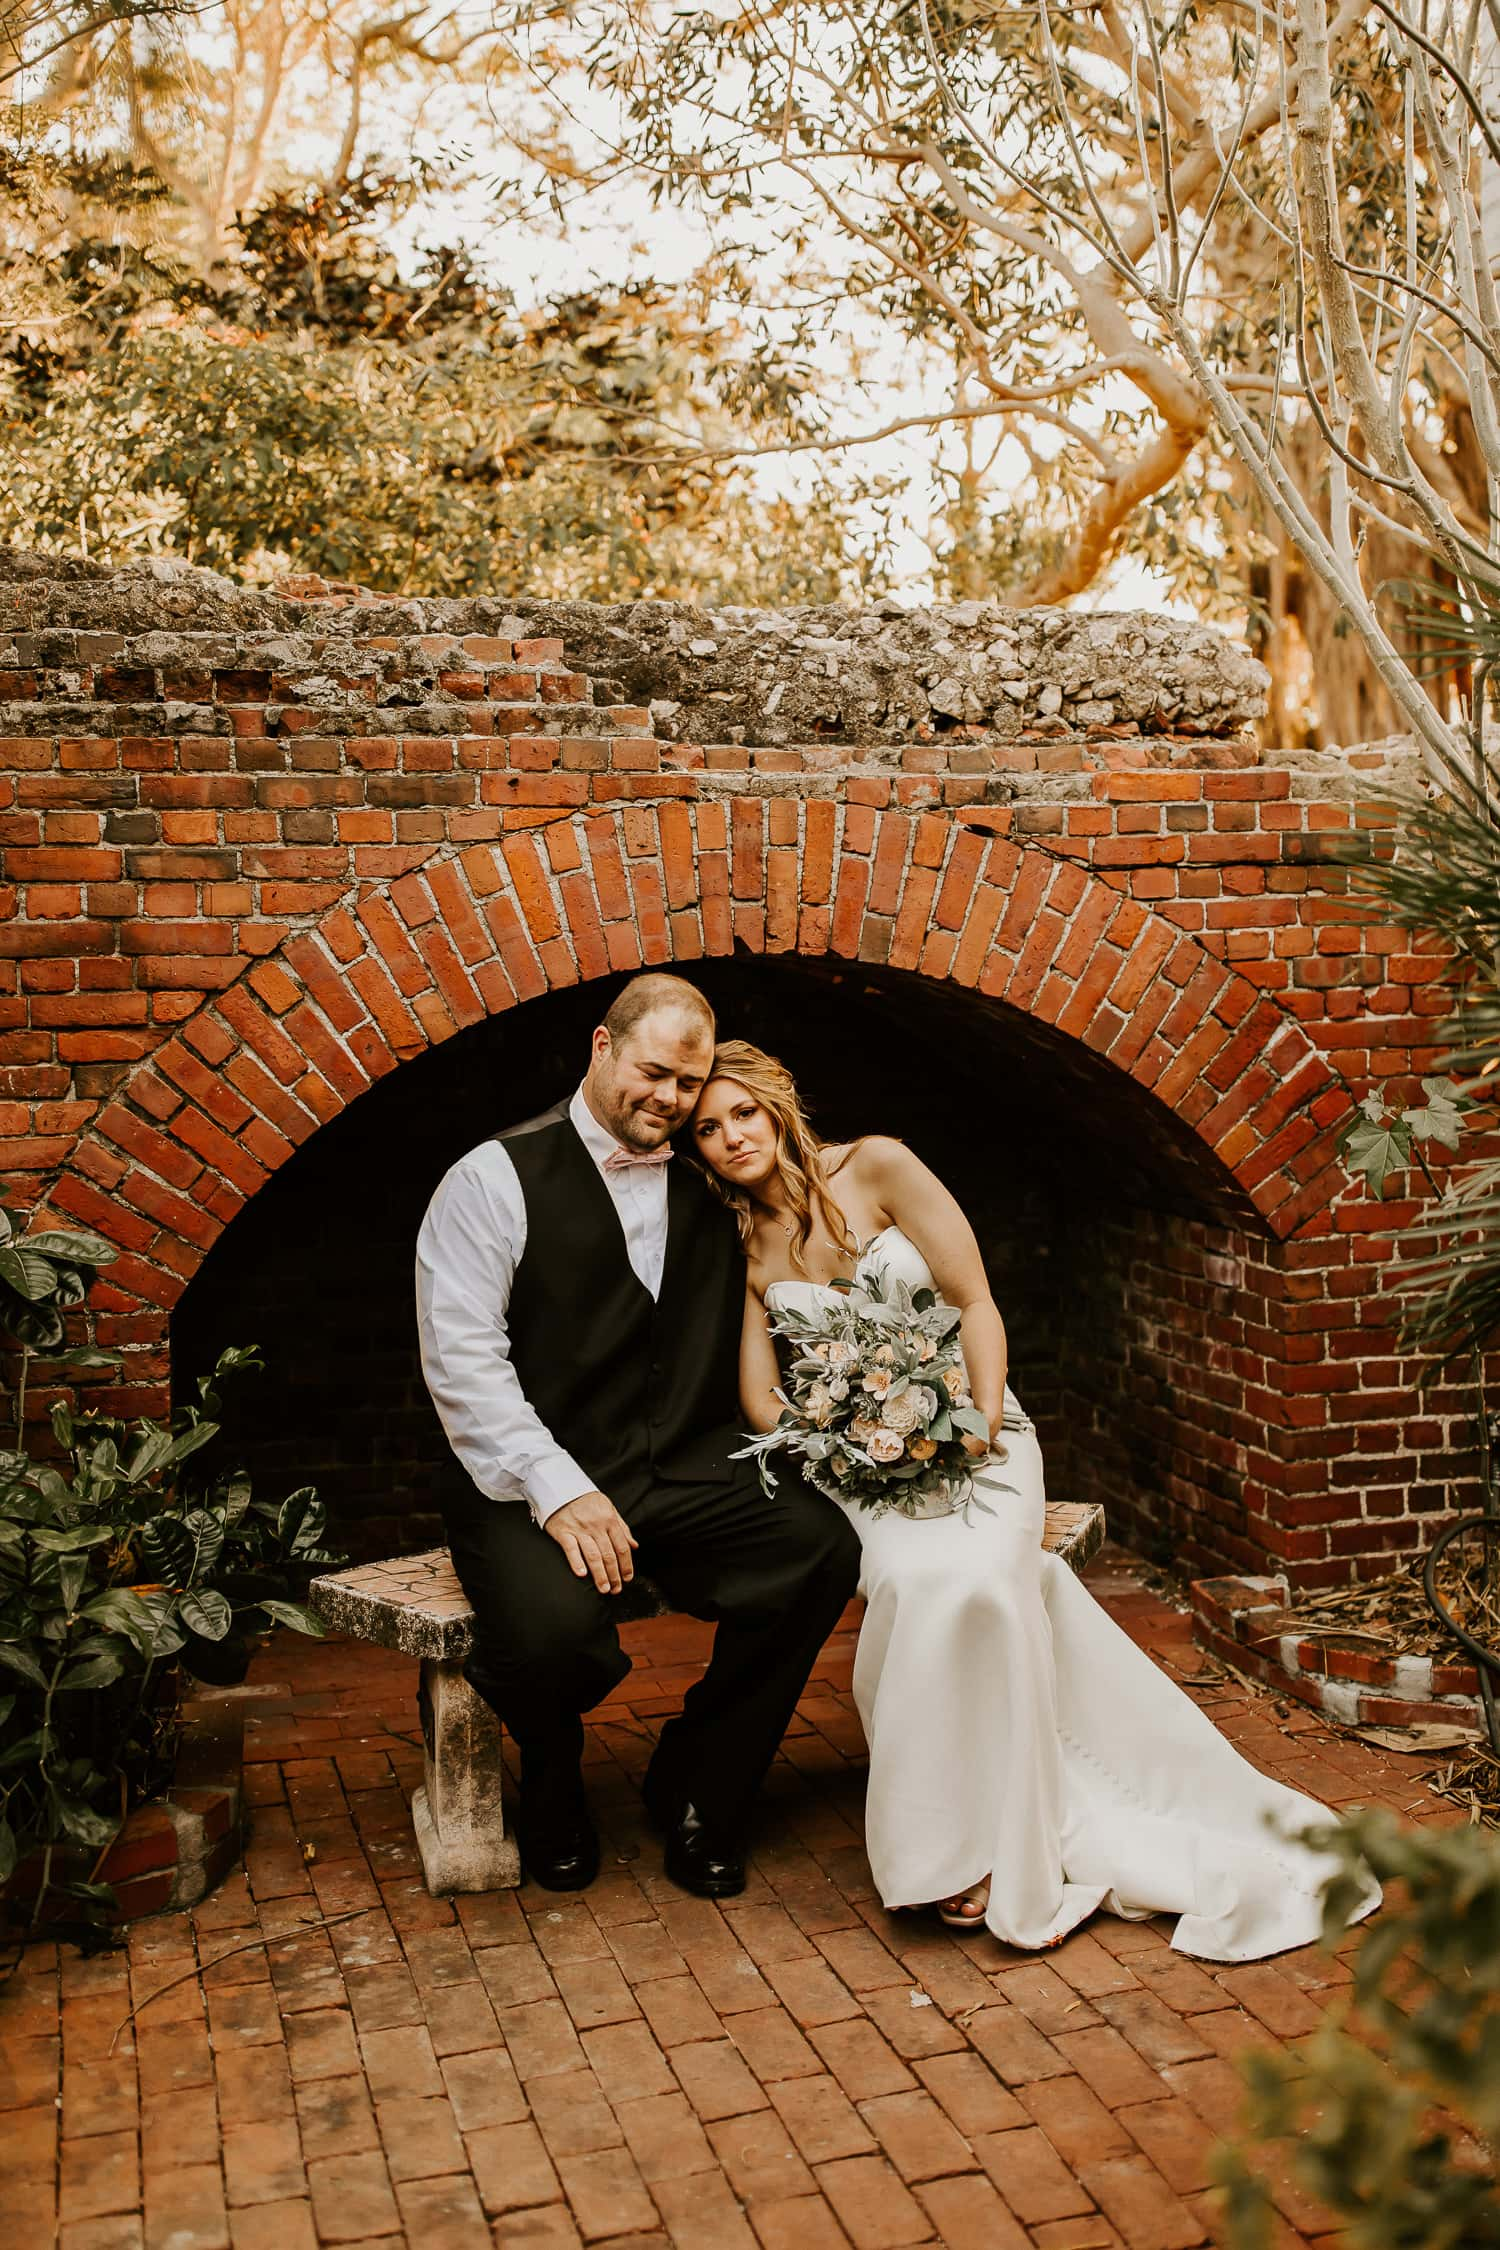 Bride and groom sitting on a bench under a brick archway in West Martello Gardens in Key West, one of the most beautiful places to elope in Florida.